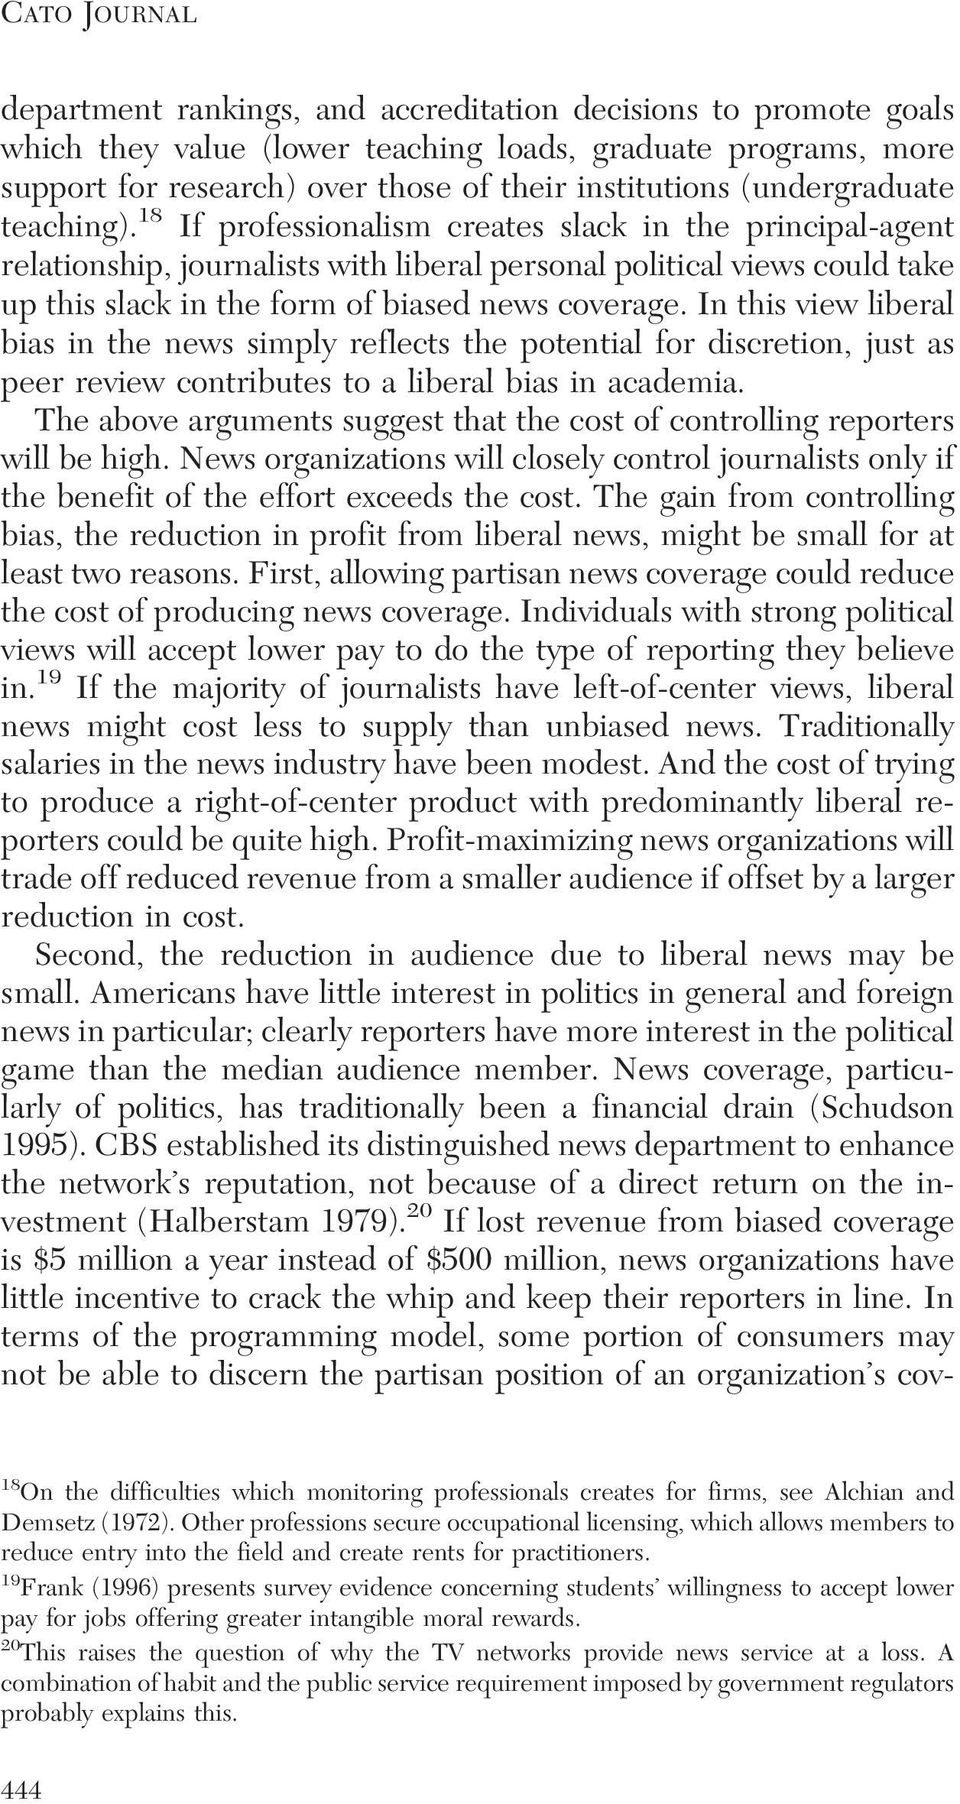 18 If professionalism creates slack in the principal-agent relationship, journalists with liberal personal political views could take up this slack in the form of biased news coverage.